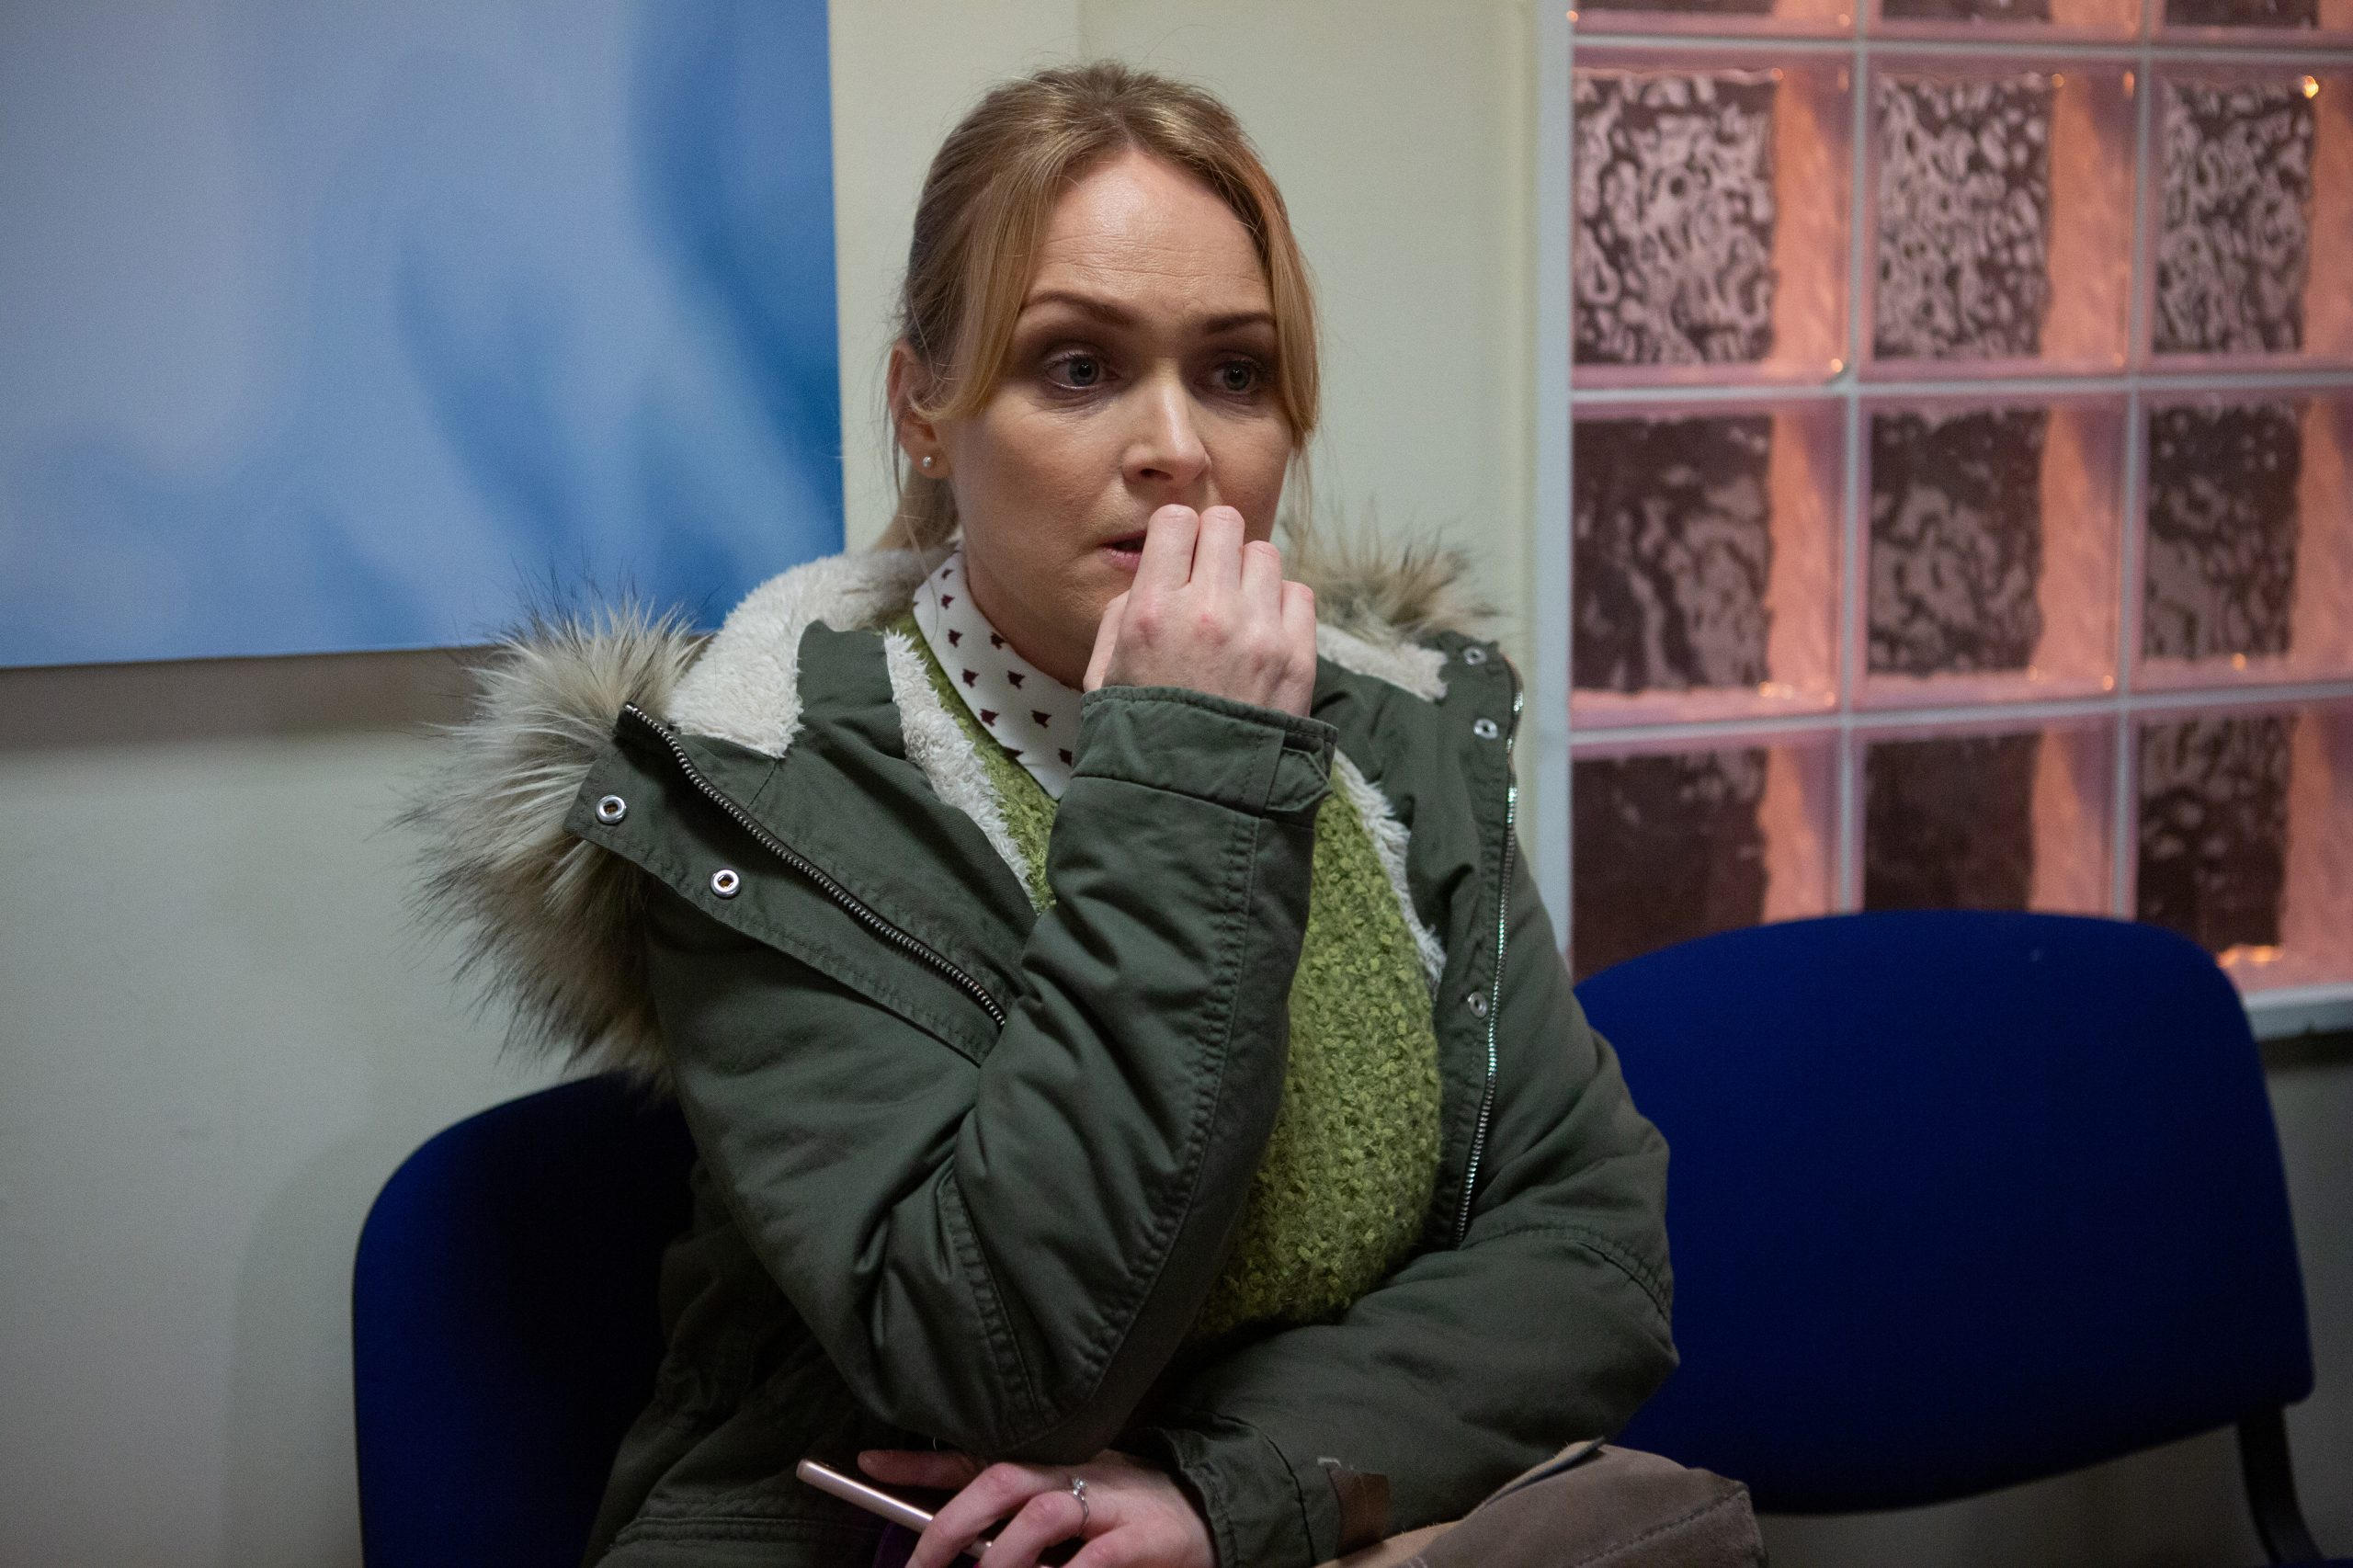 Emmerdale SPOILERS: Charity betrays Vanessa over cancer news